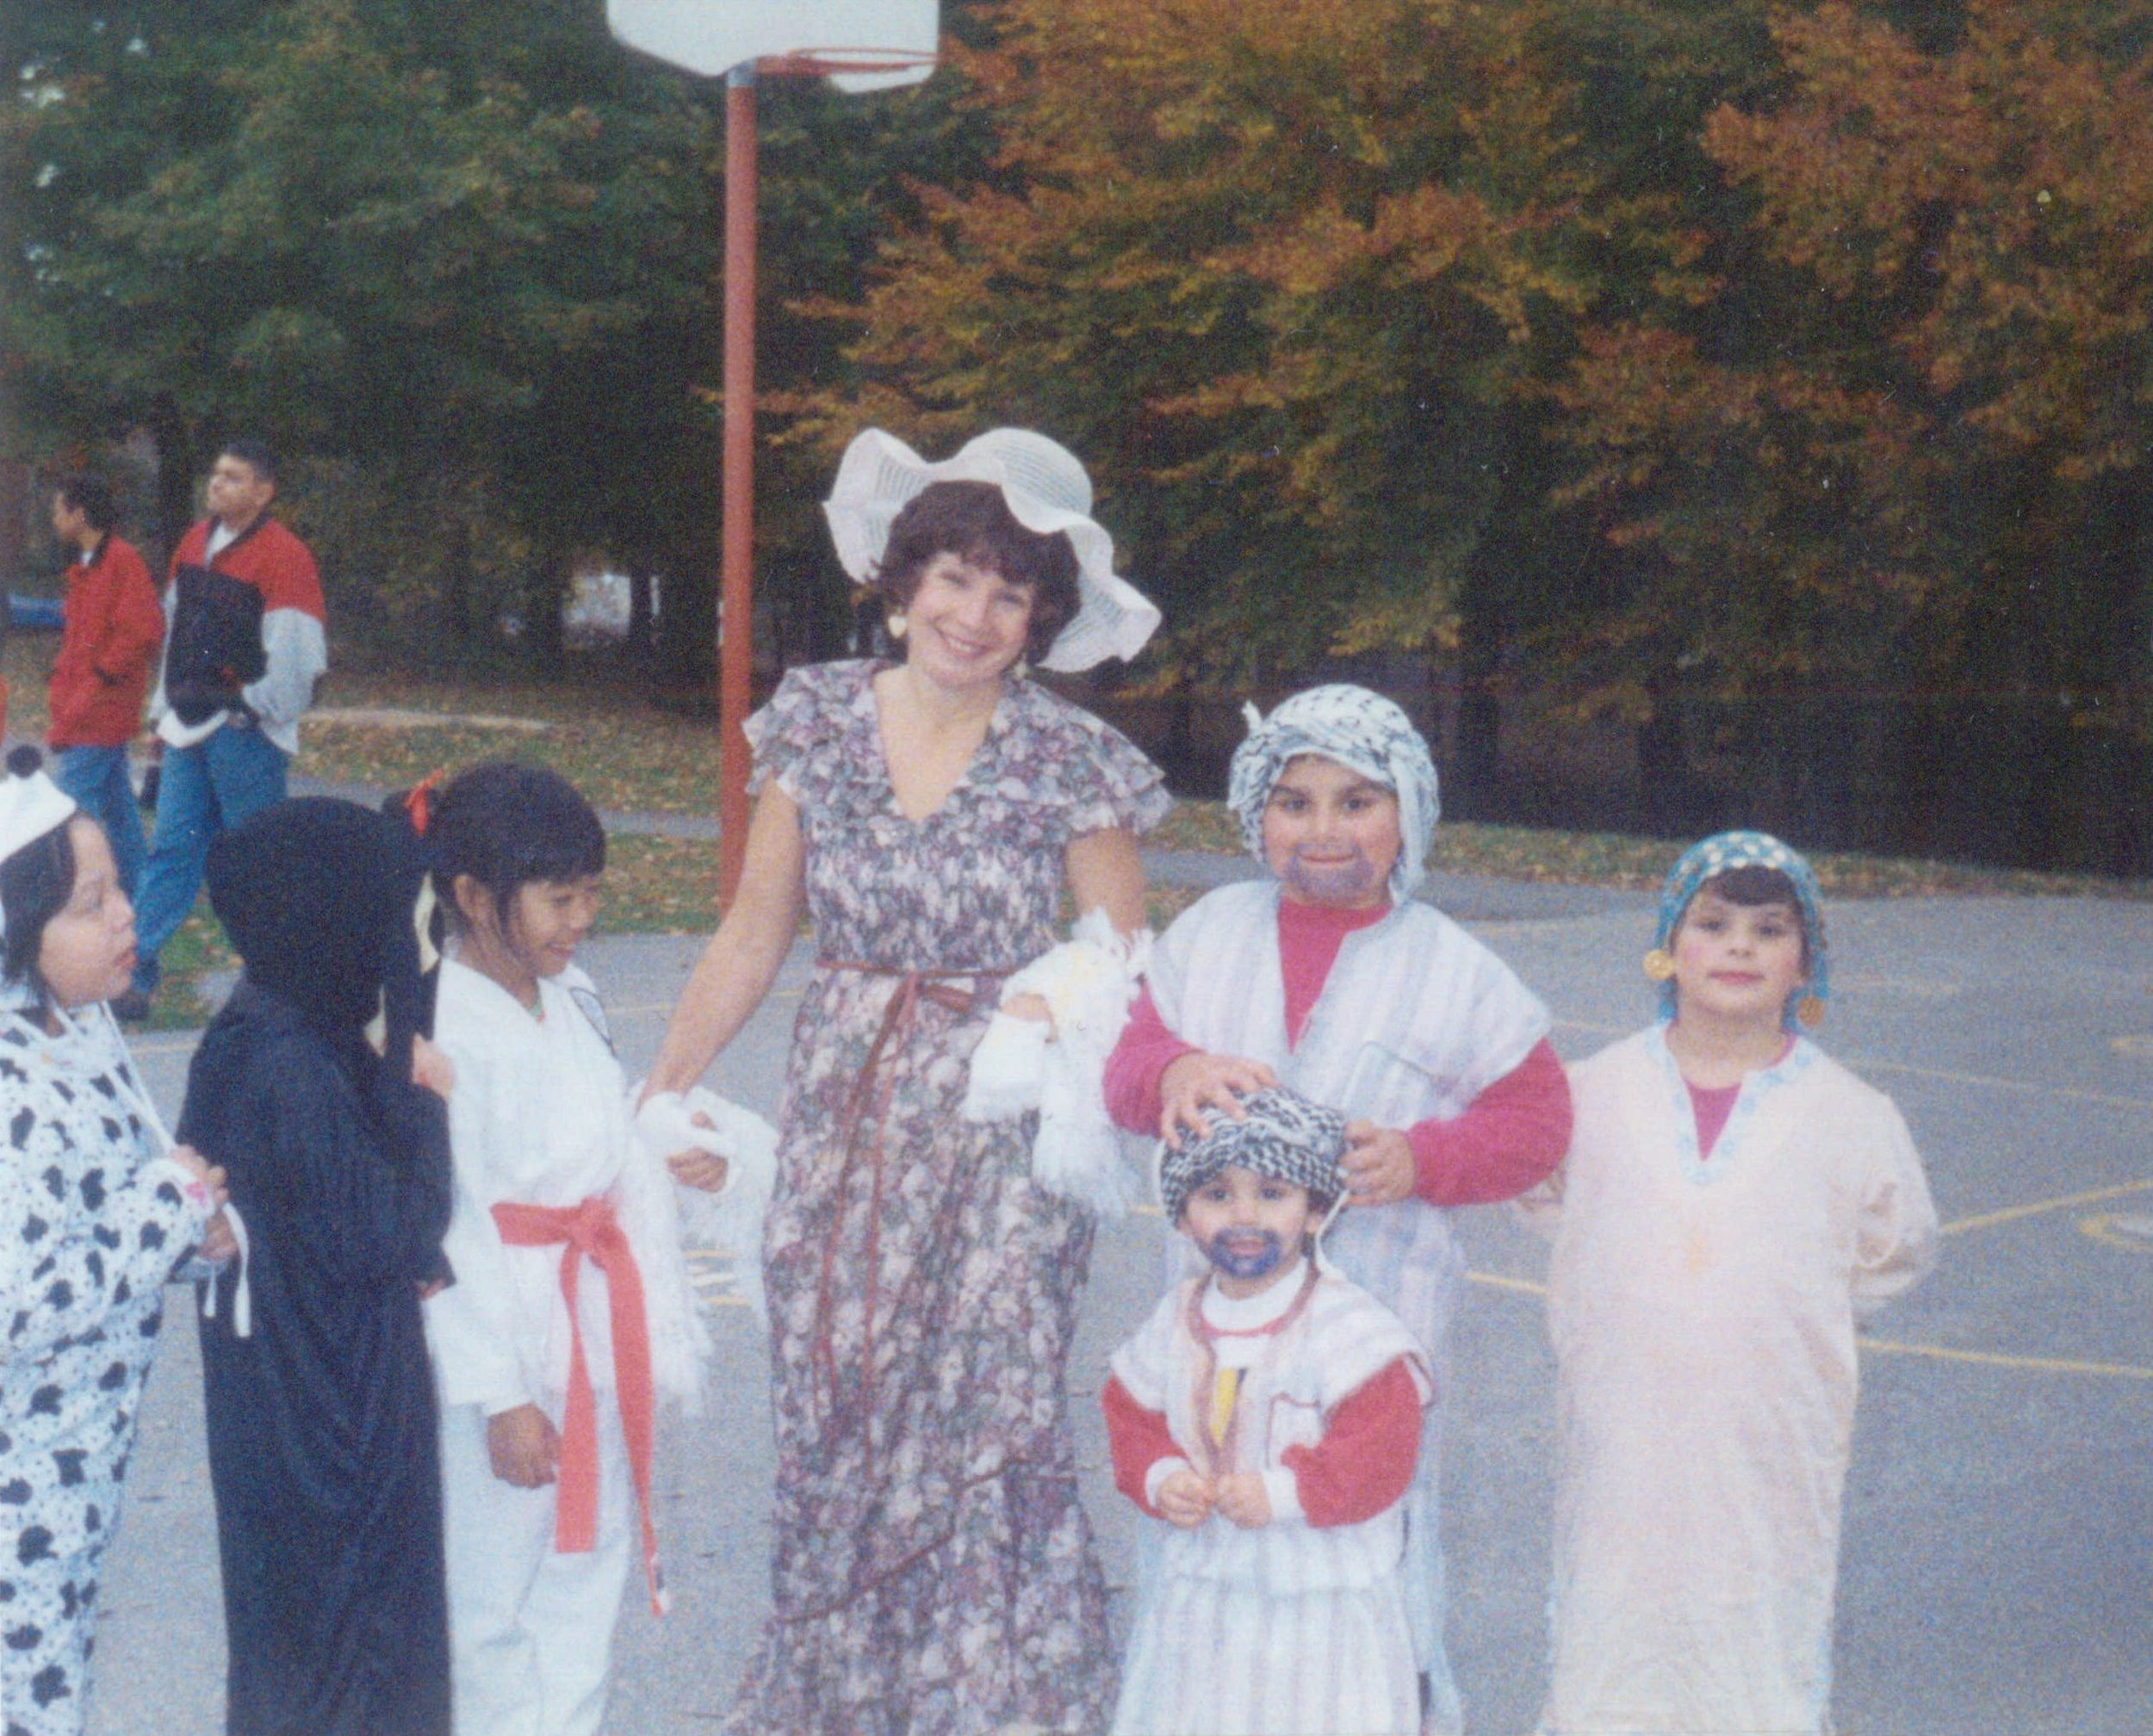 Arabs dressed as arabs in America for halloween